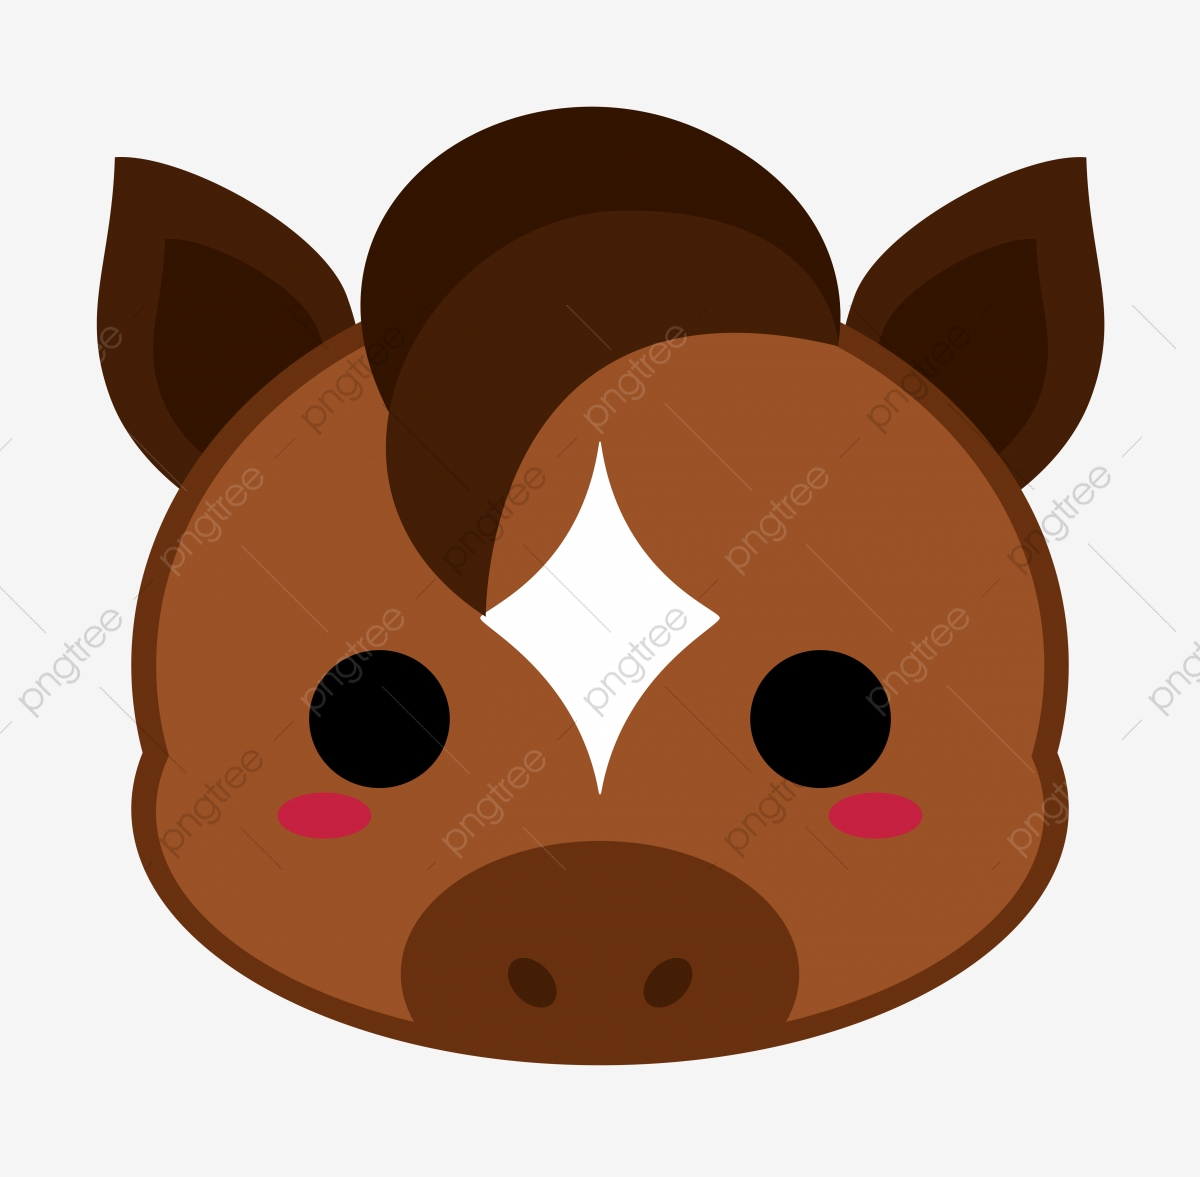 Horse Head Png Images Vector And Psd Files Free Download On Pngtree